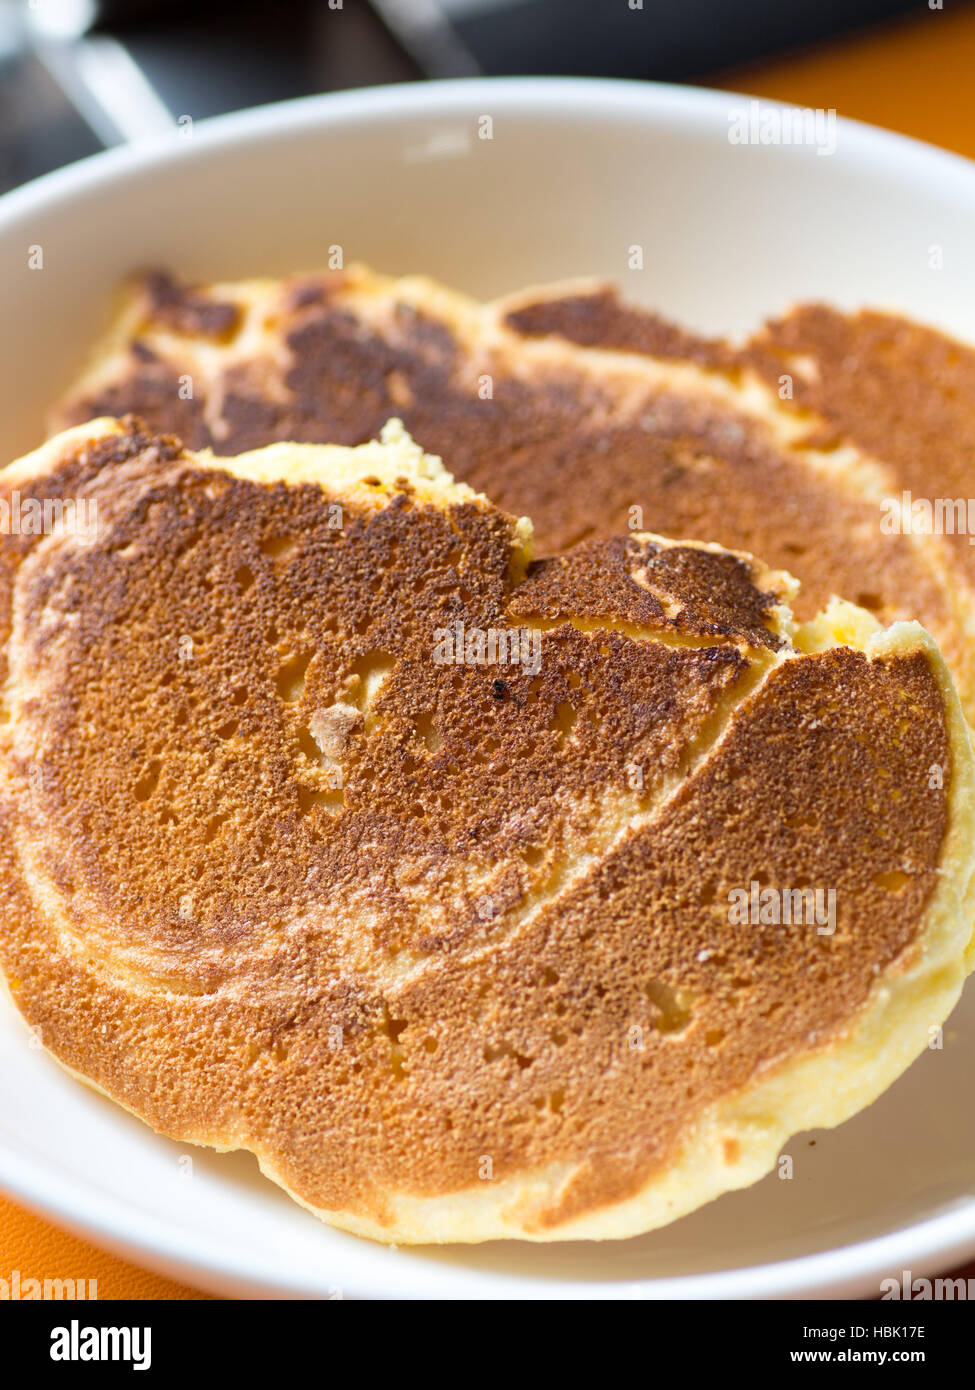 Simple and plane cornmeal pancakes on the white plate - Stock Image